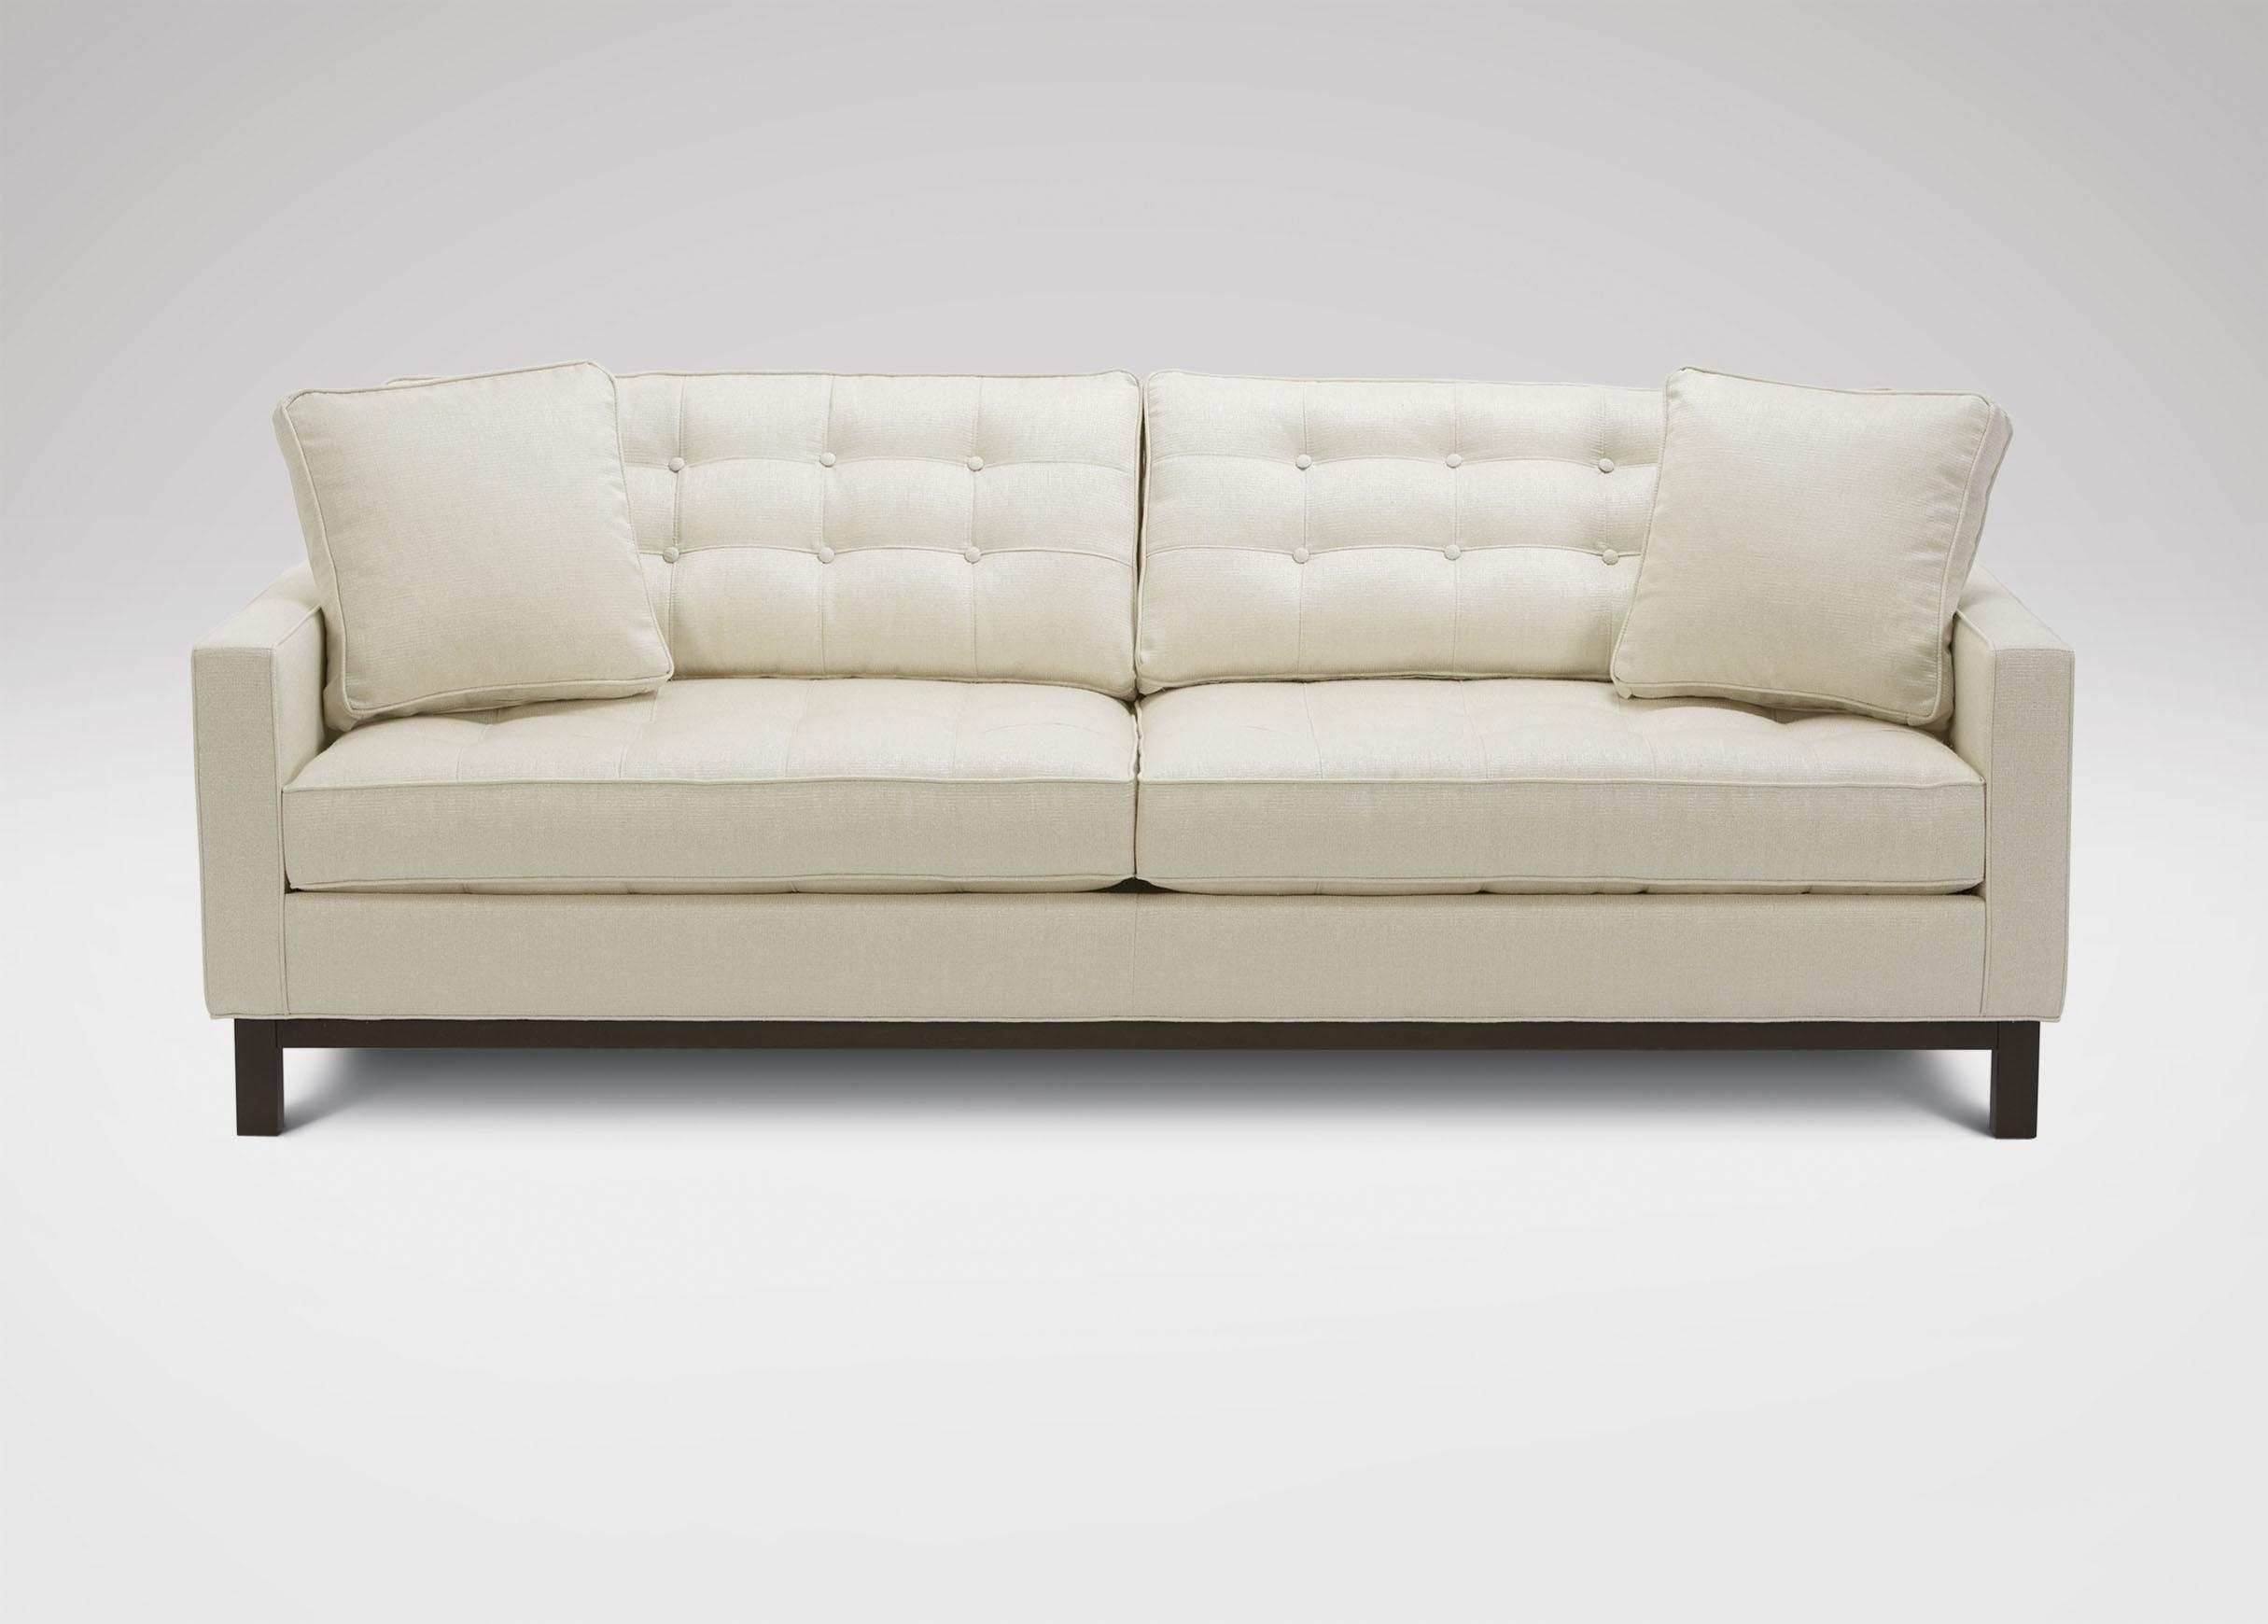 Melrose Sofa | Sofas & Loveseats Pertaining To Ethan Allen Chesterfield Sofas (View 10 of 20)